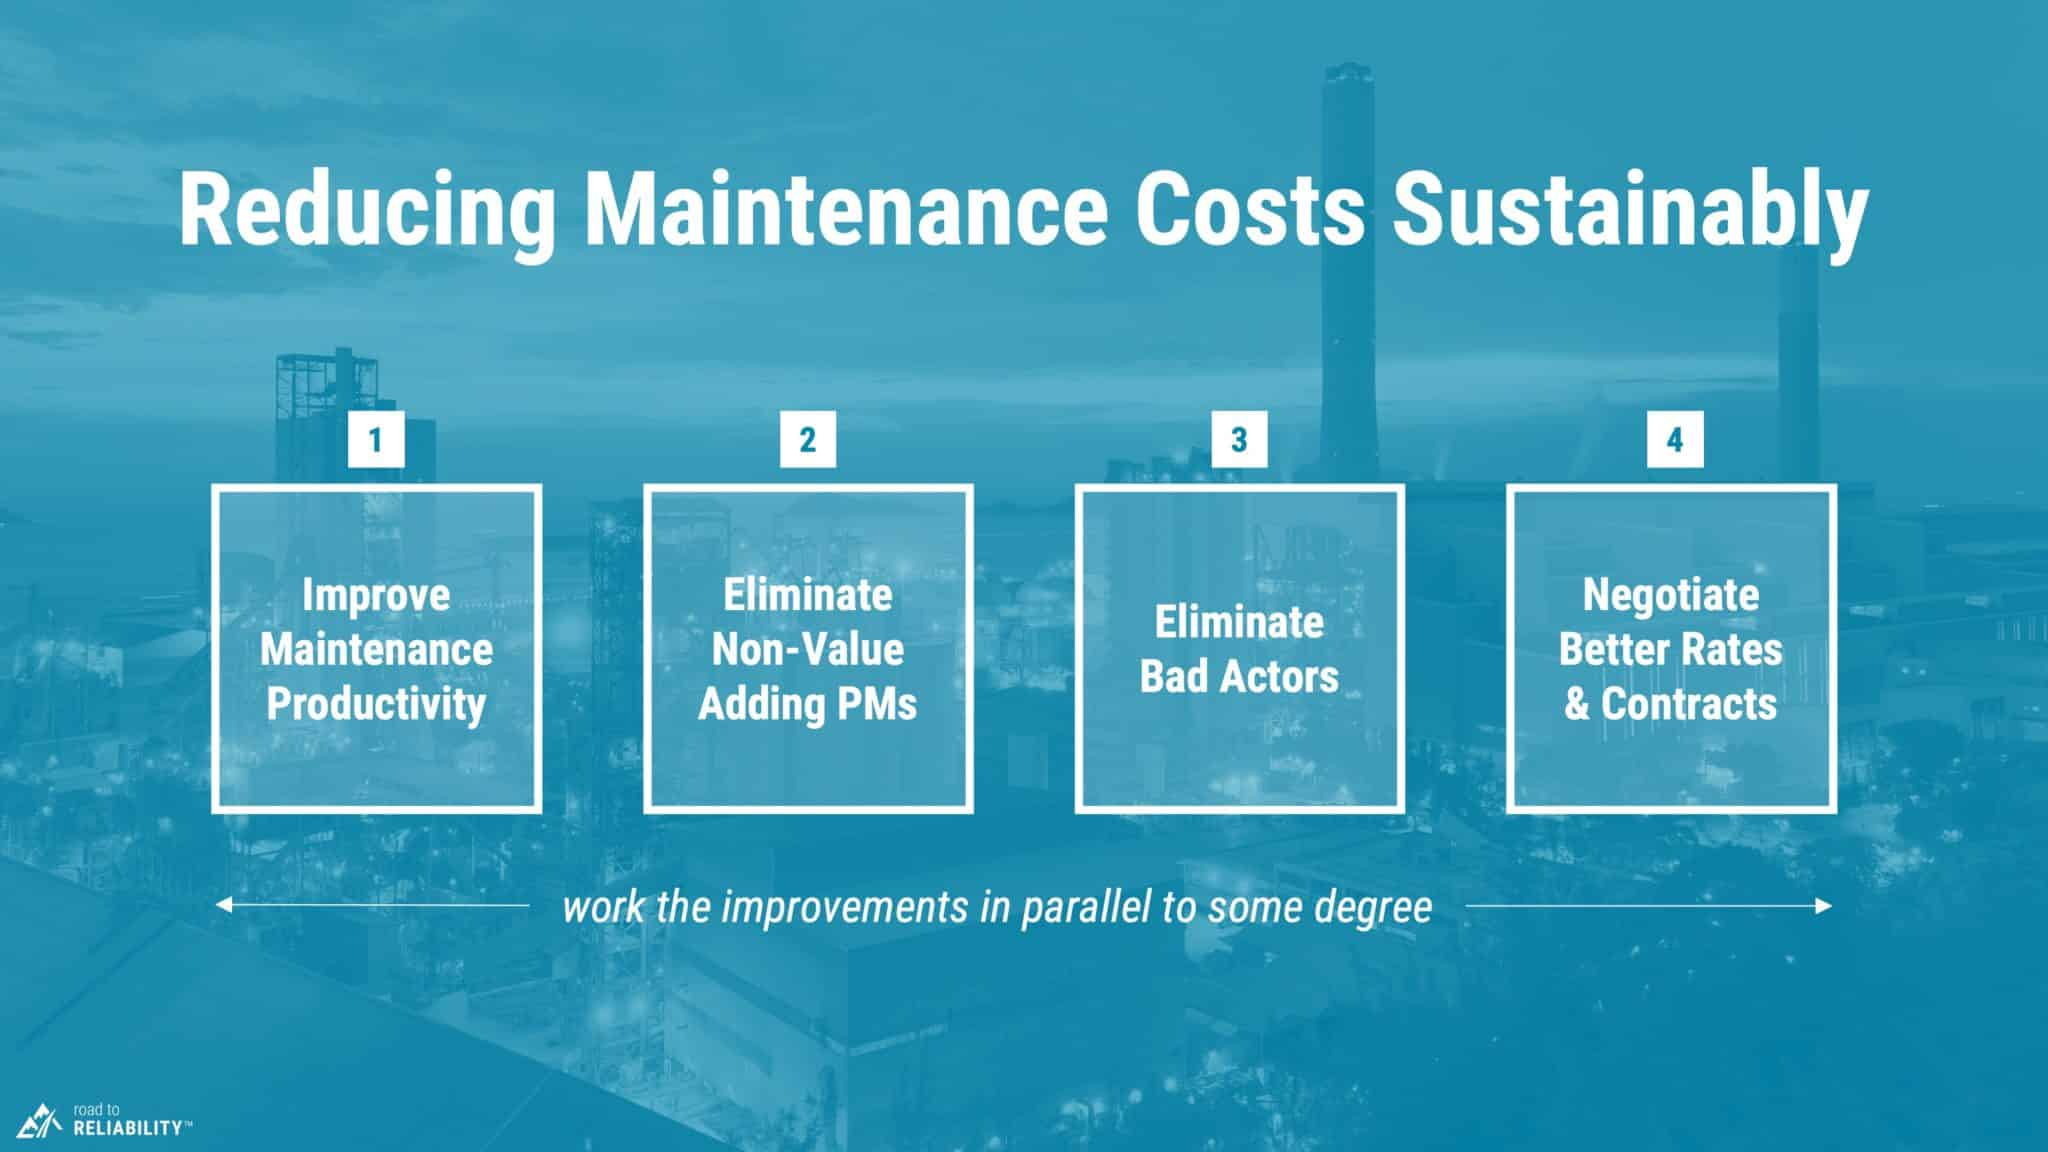 4 steps for reducing maintenance costs